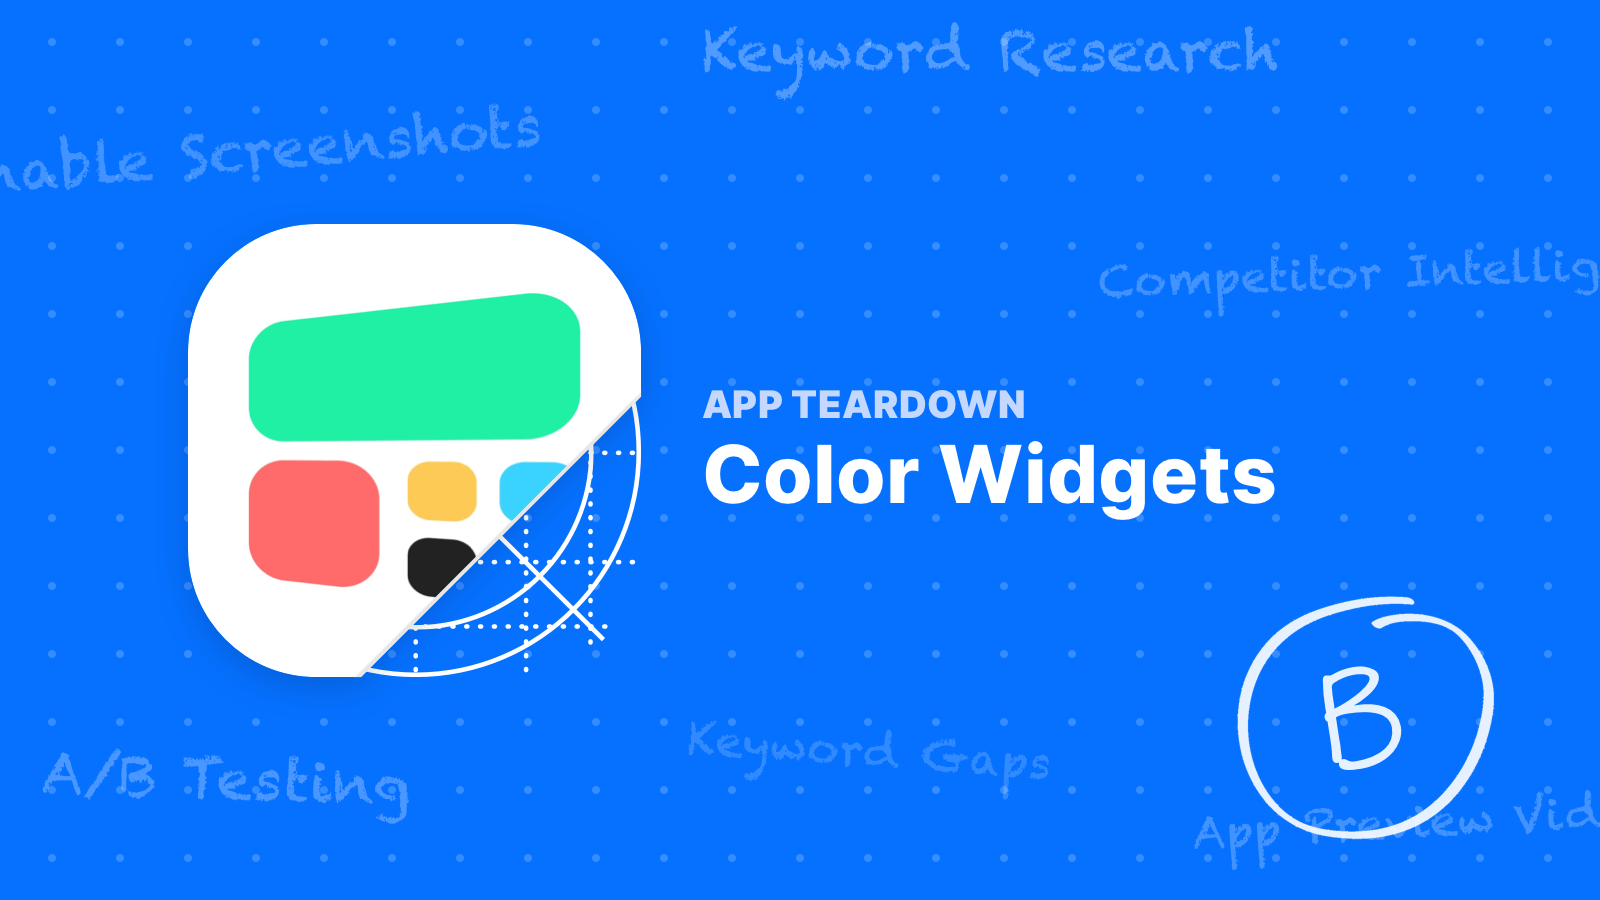 App Teardown - Color Widgets Has Some Opportunities